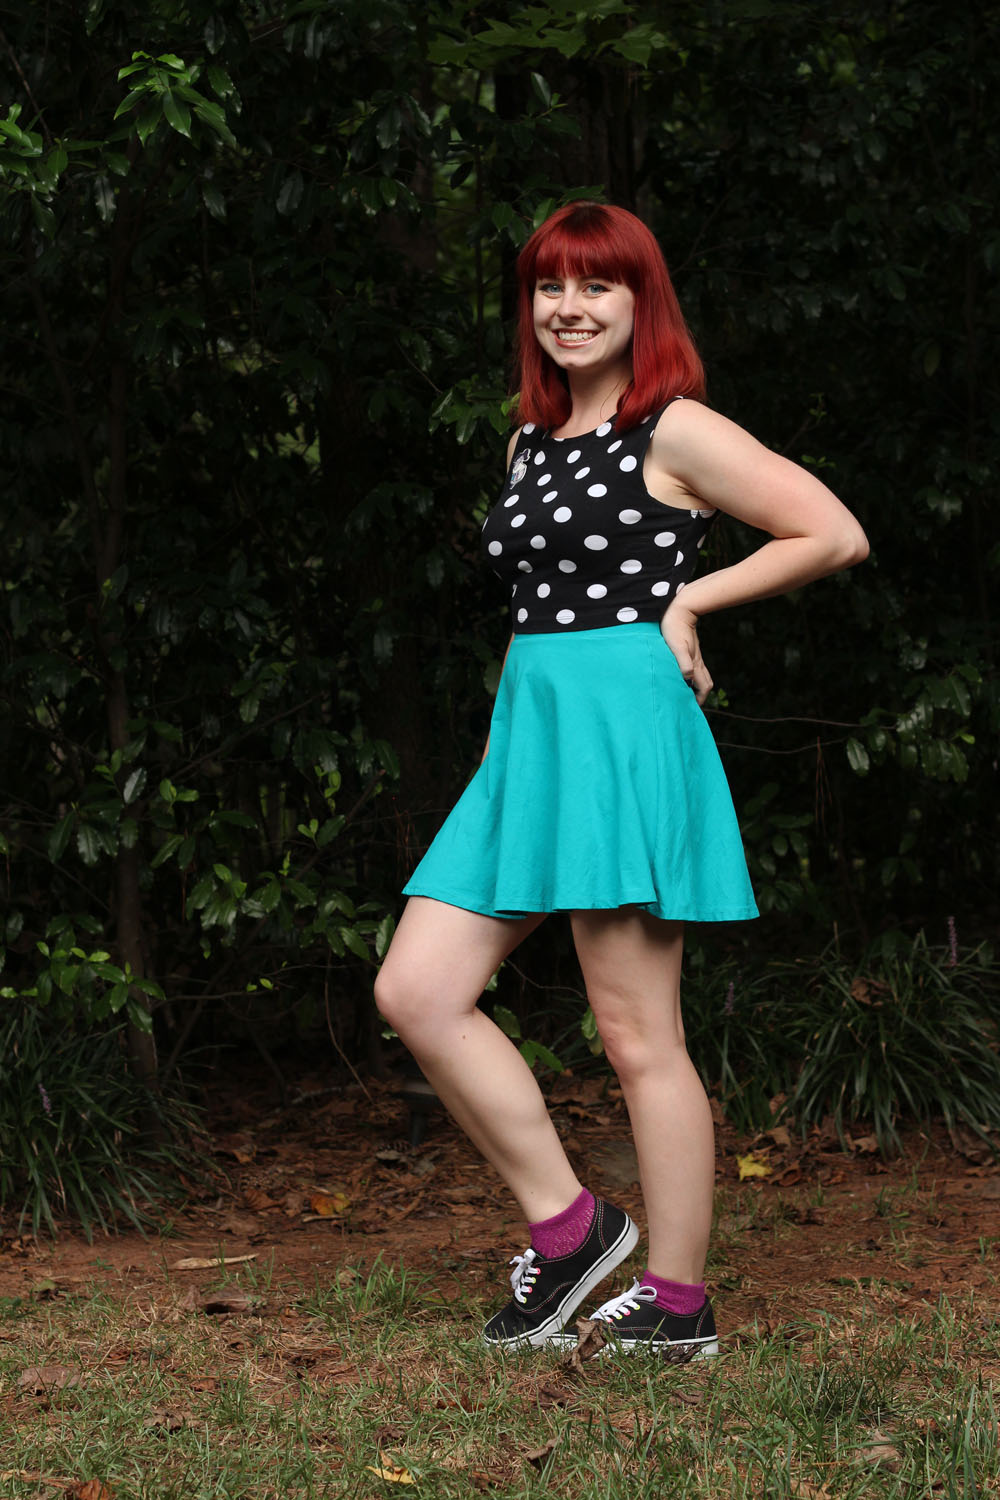 Polka Dot Sleeveless Crop Top Blue Simple Skater Skirt Purple Socks Black Sneakeres